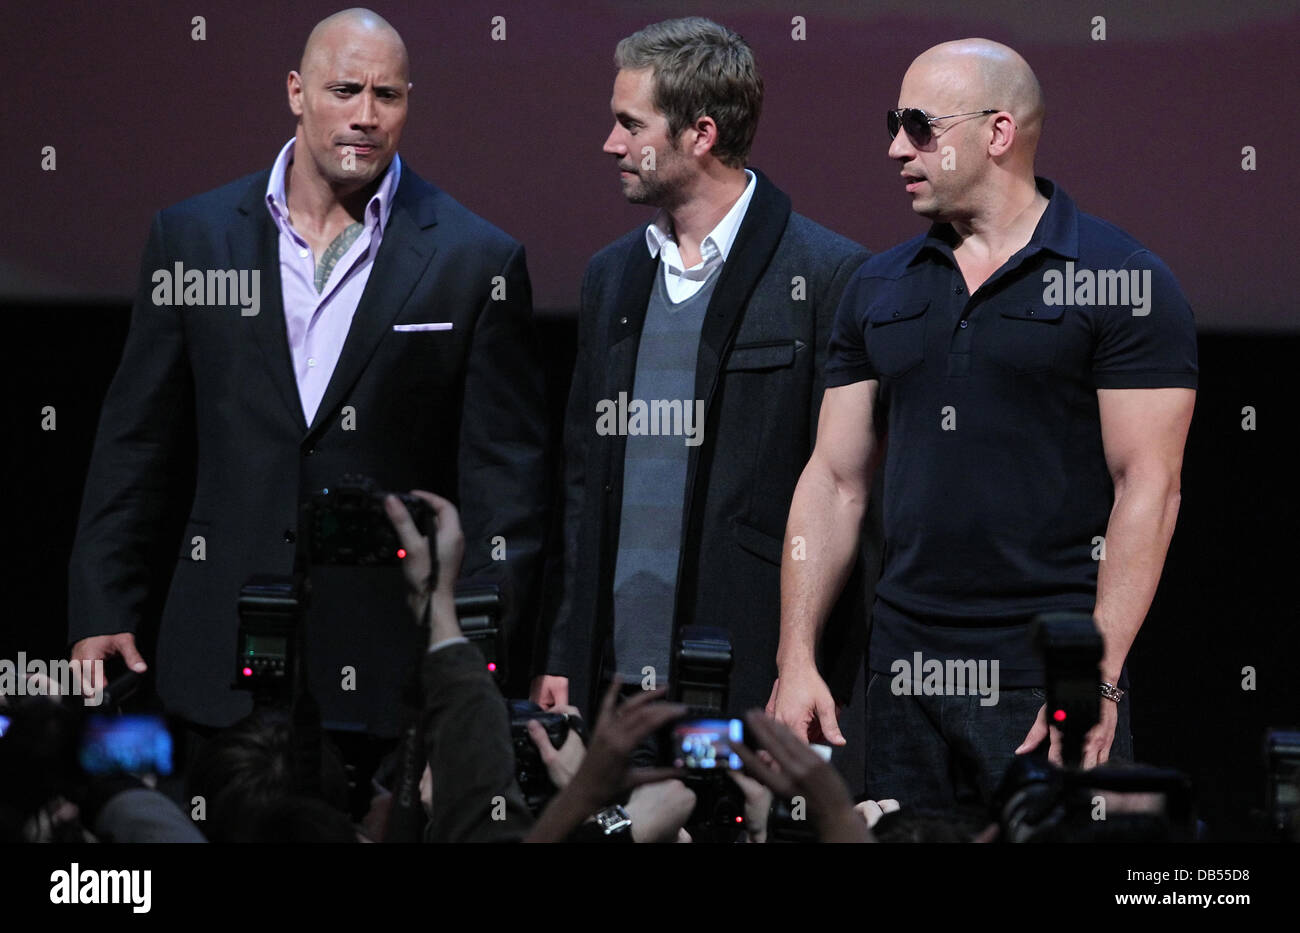 dwayne johnson paul walker and vin diesel 39 fast furious 5 39 stock photo royalty free image. Black Bedroom Furniture Sets. Home Design Ideas